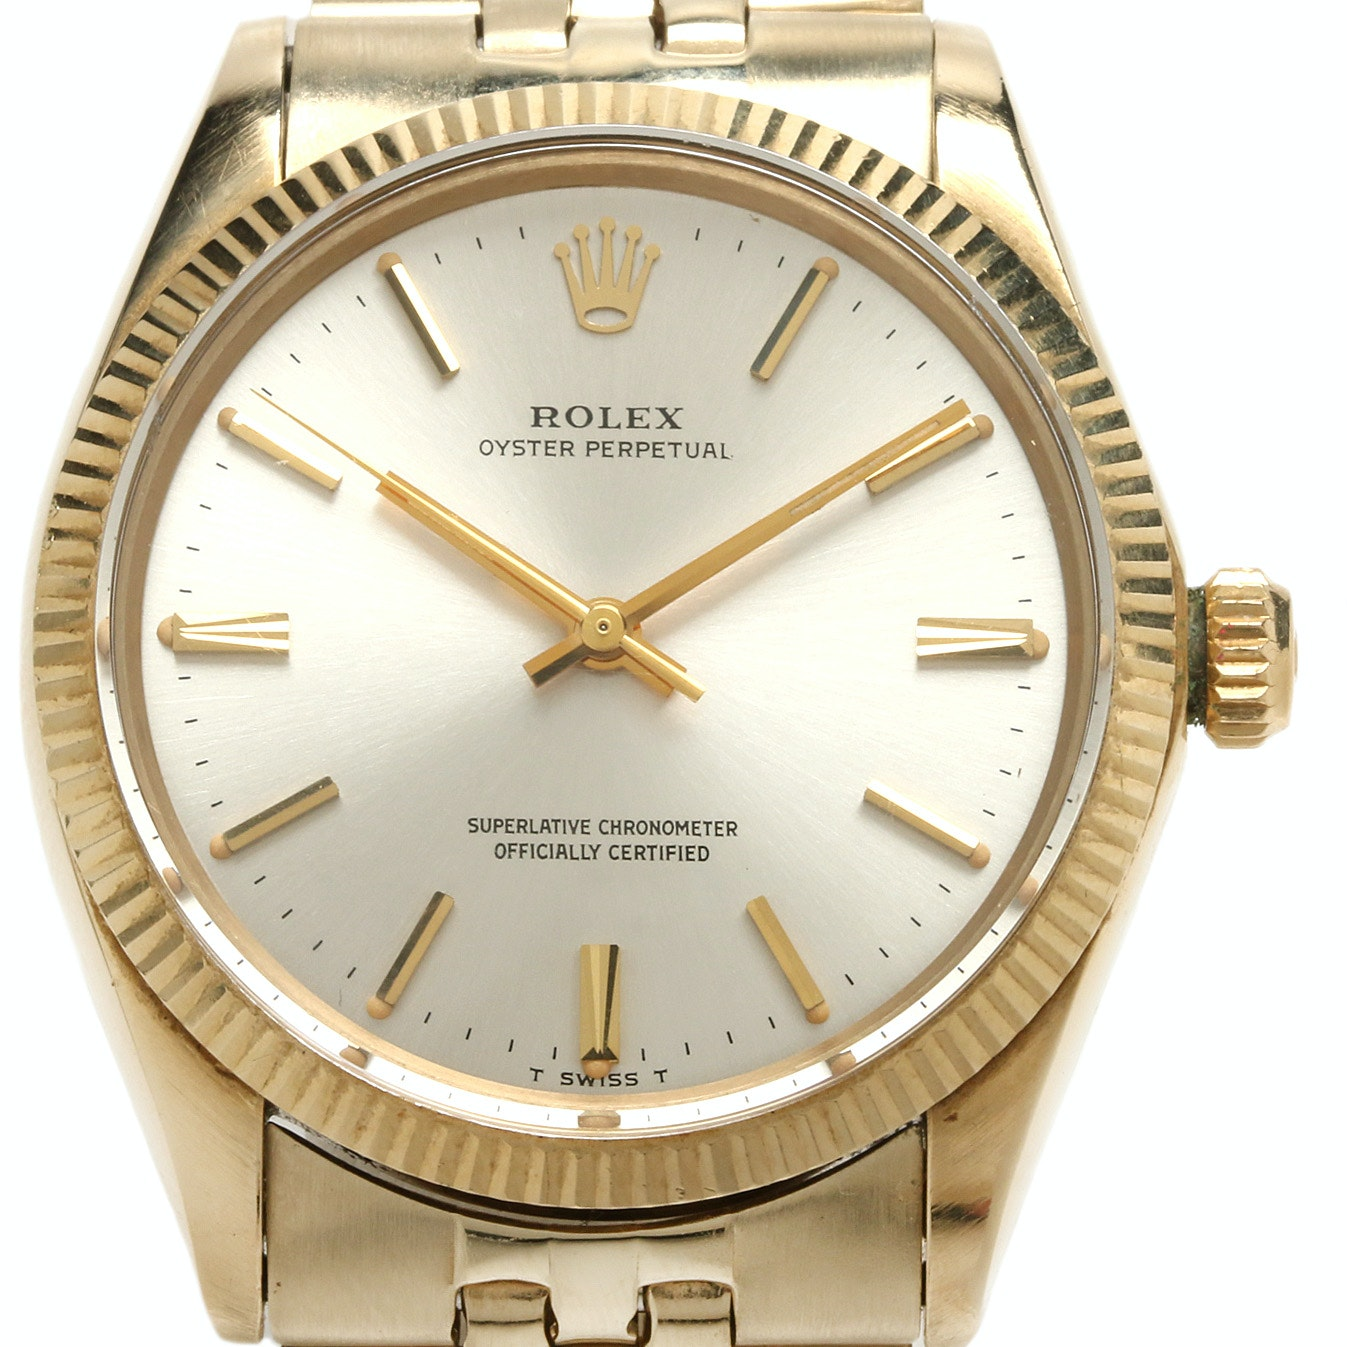 1969 Rolex Oyster Perpetual 14K Yellow Gold Automatic Wristwatch